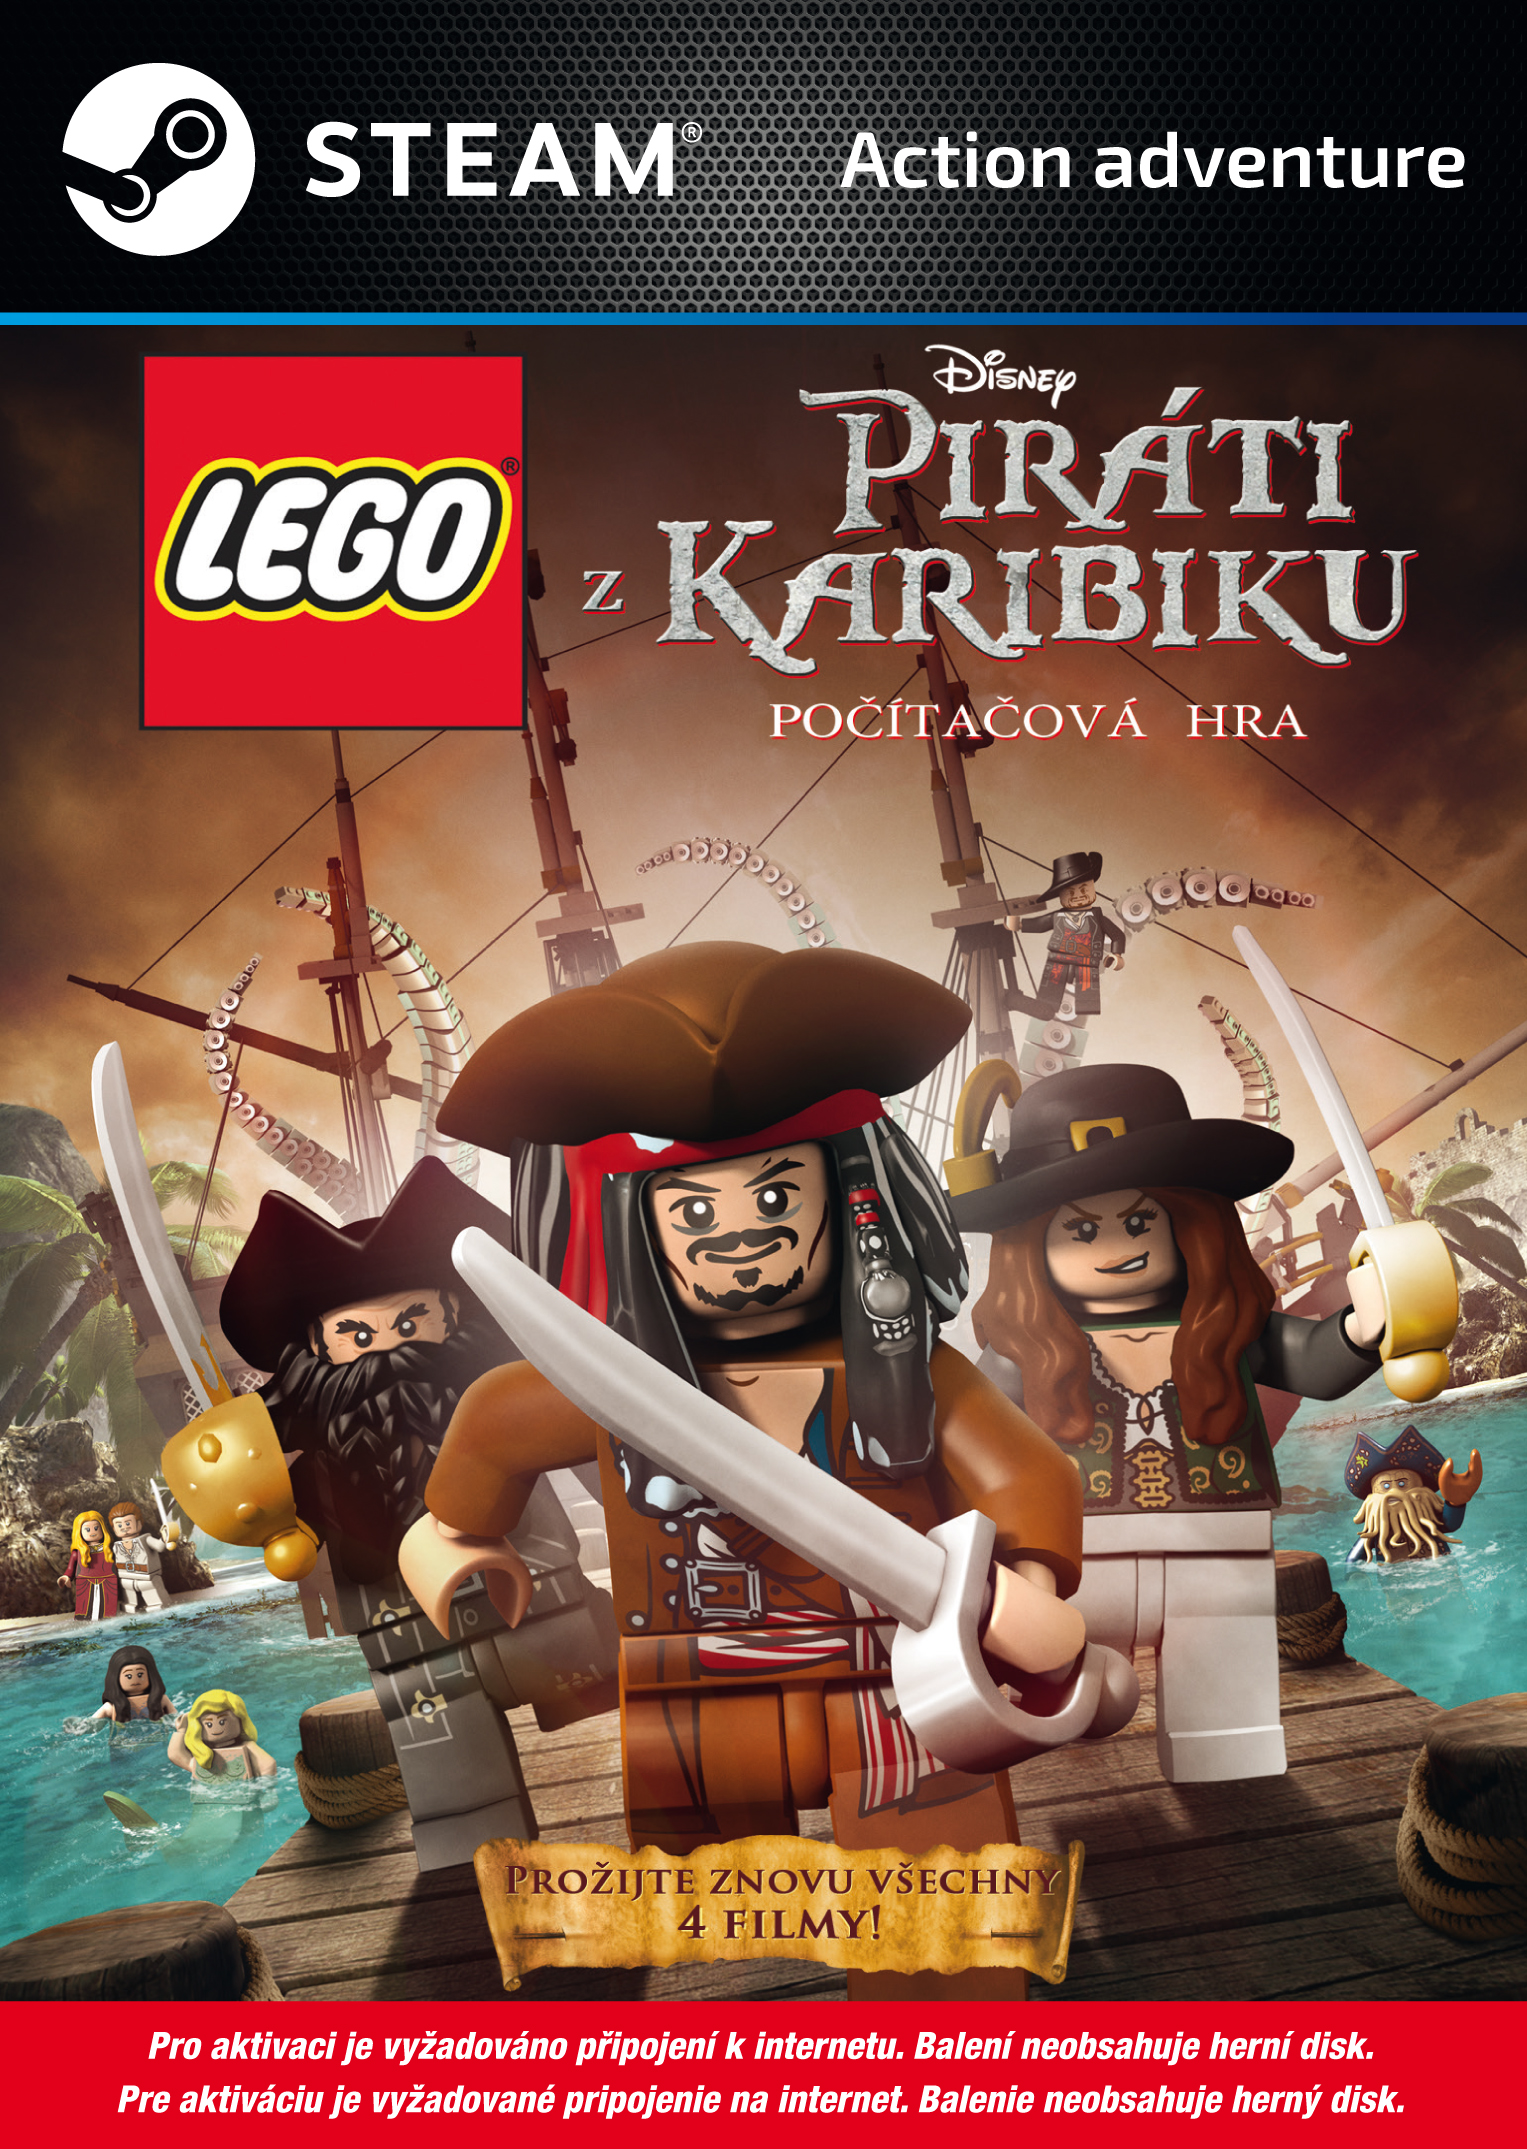 Disney LEGO Piráti z Karibiku (PC Steam) Krabicová